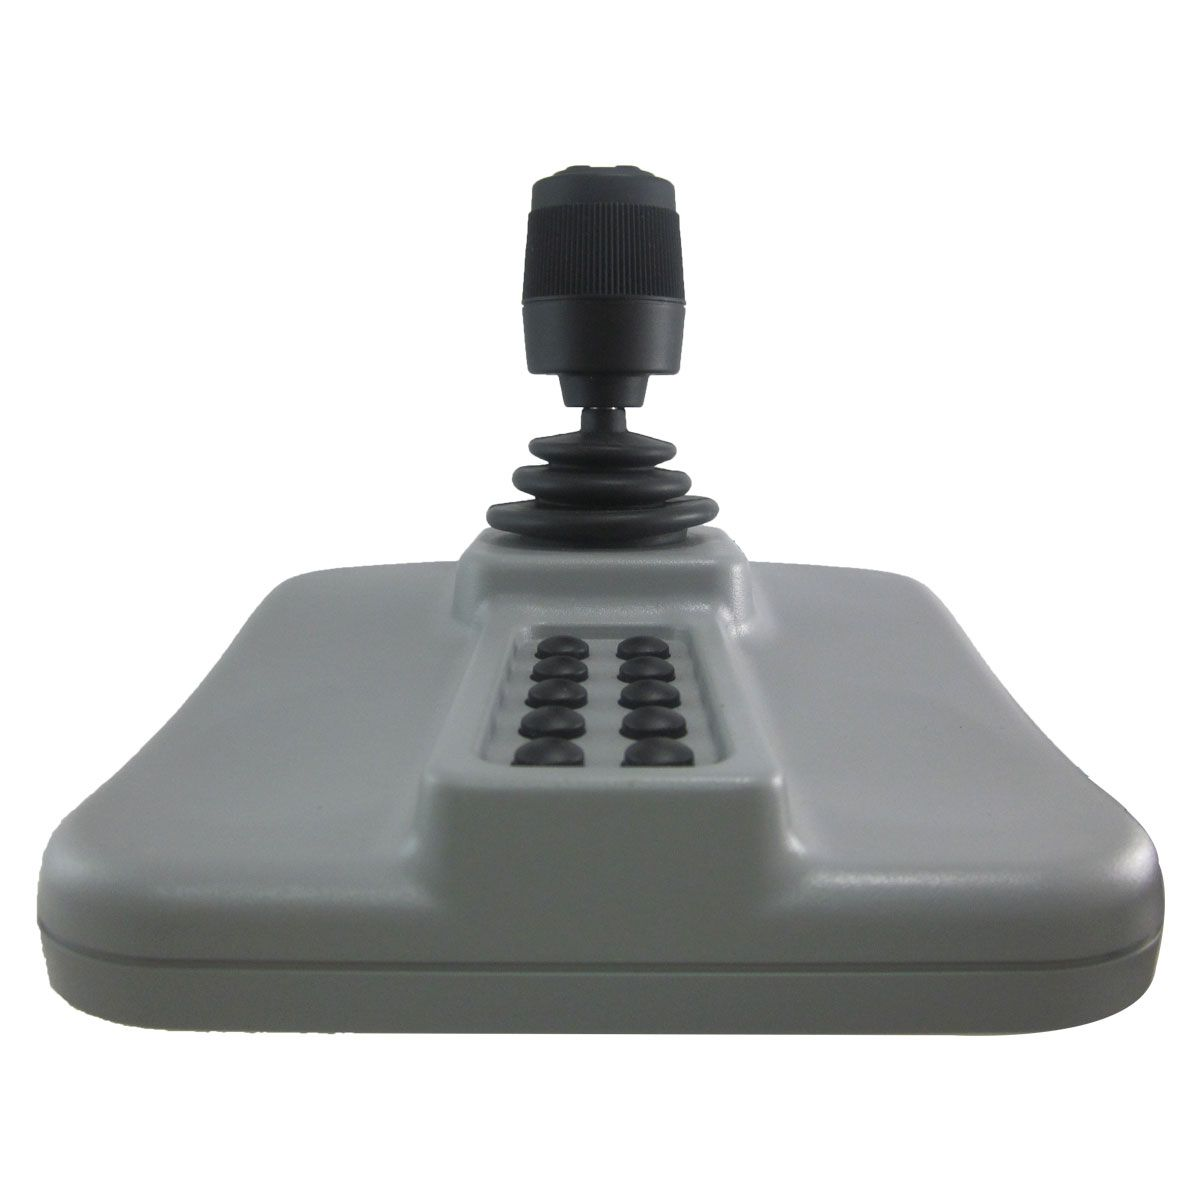 Joystick de video vigilancia AXIS 295